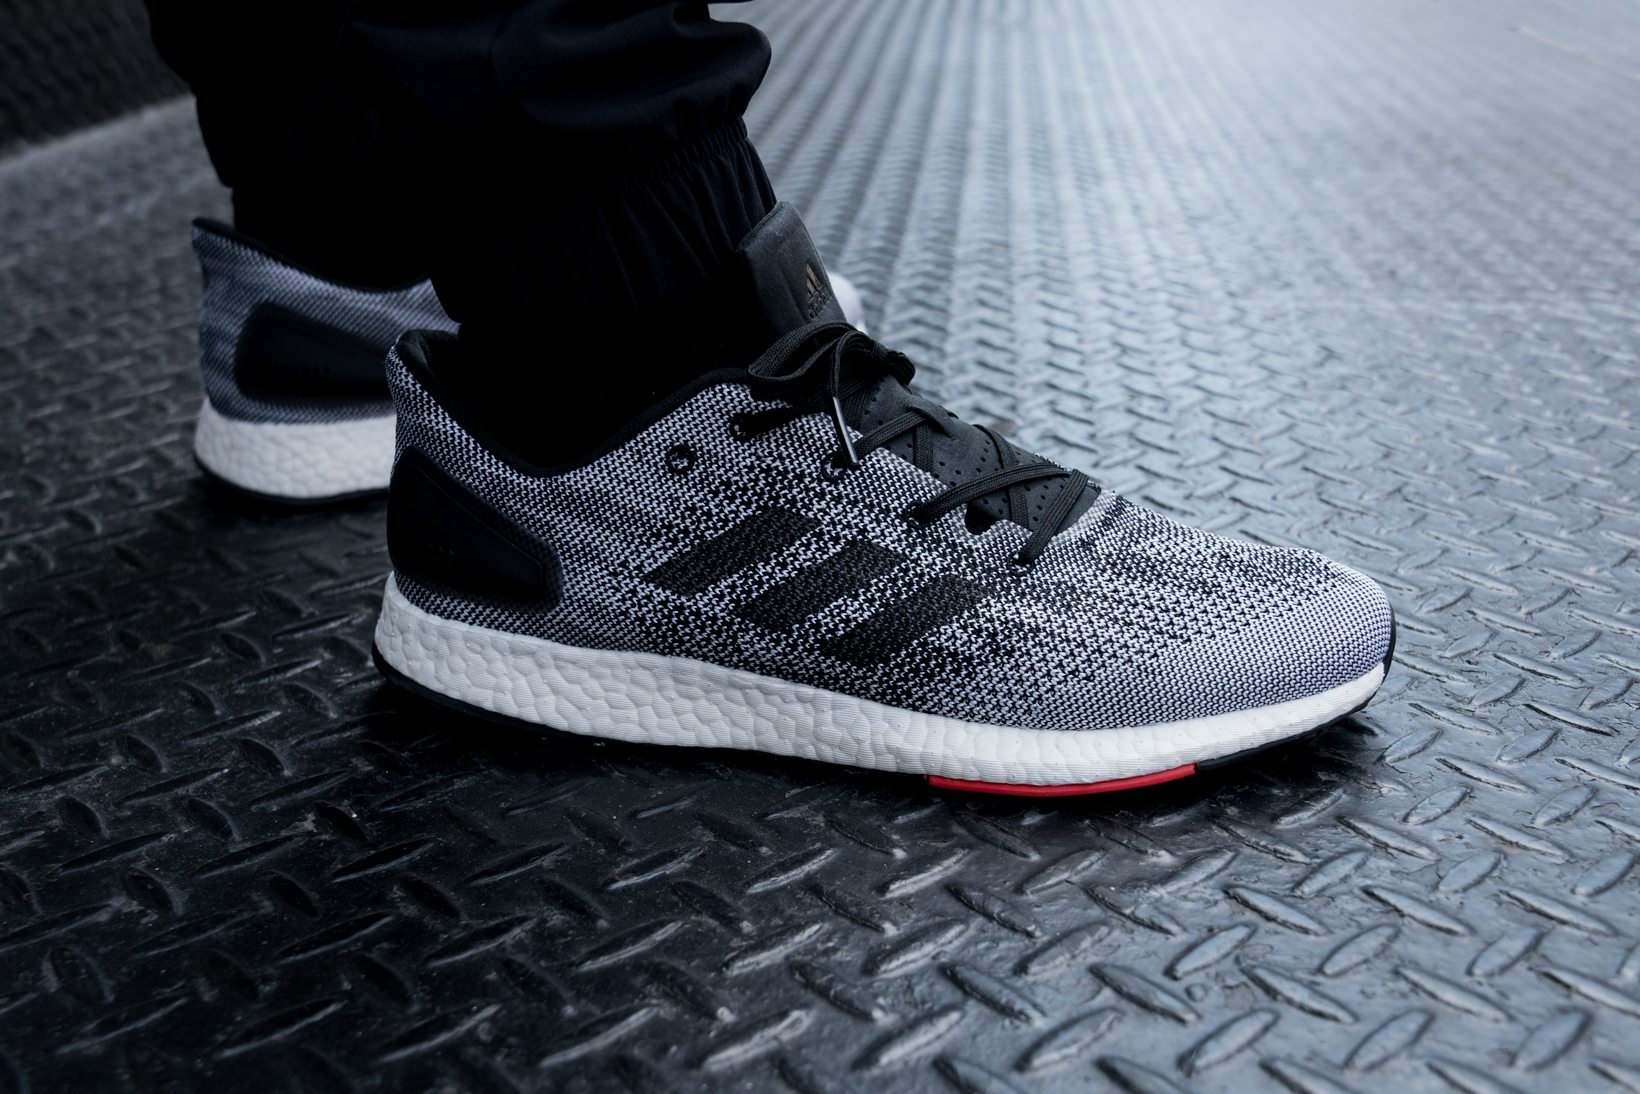 timeless design ef3c1 d9bdc Run the City in the adidas PureBOOST DPR